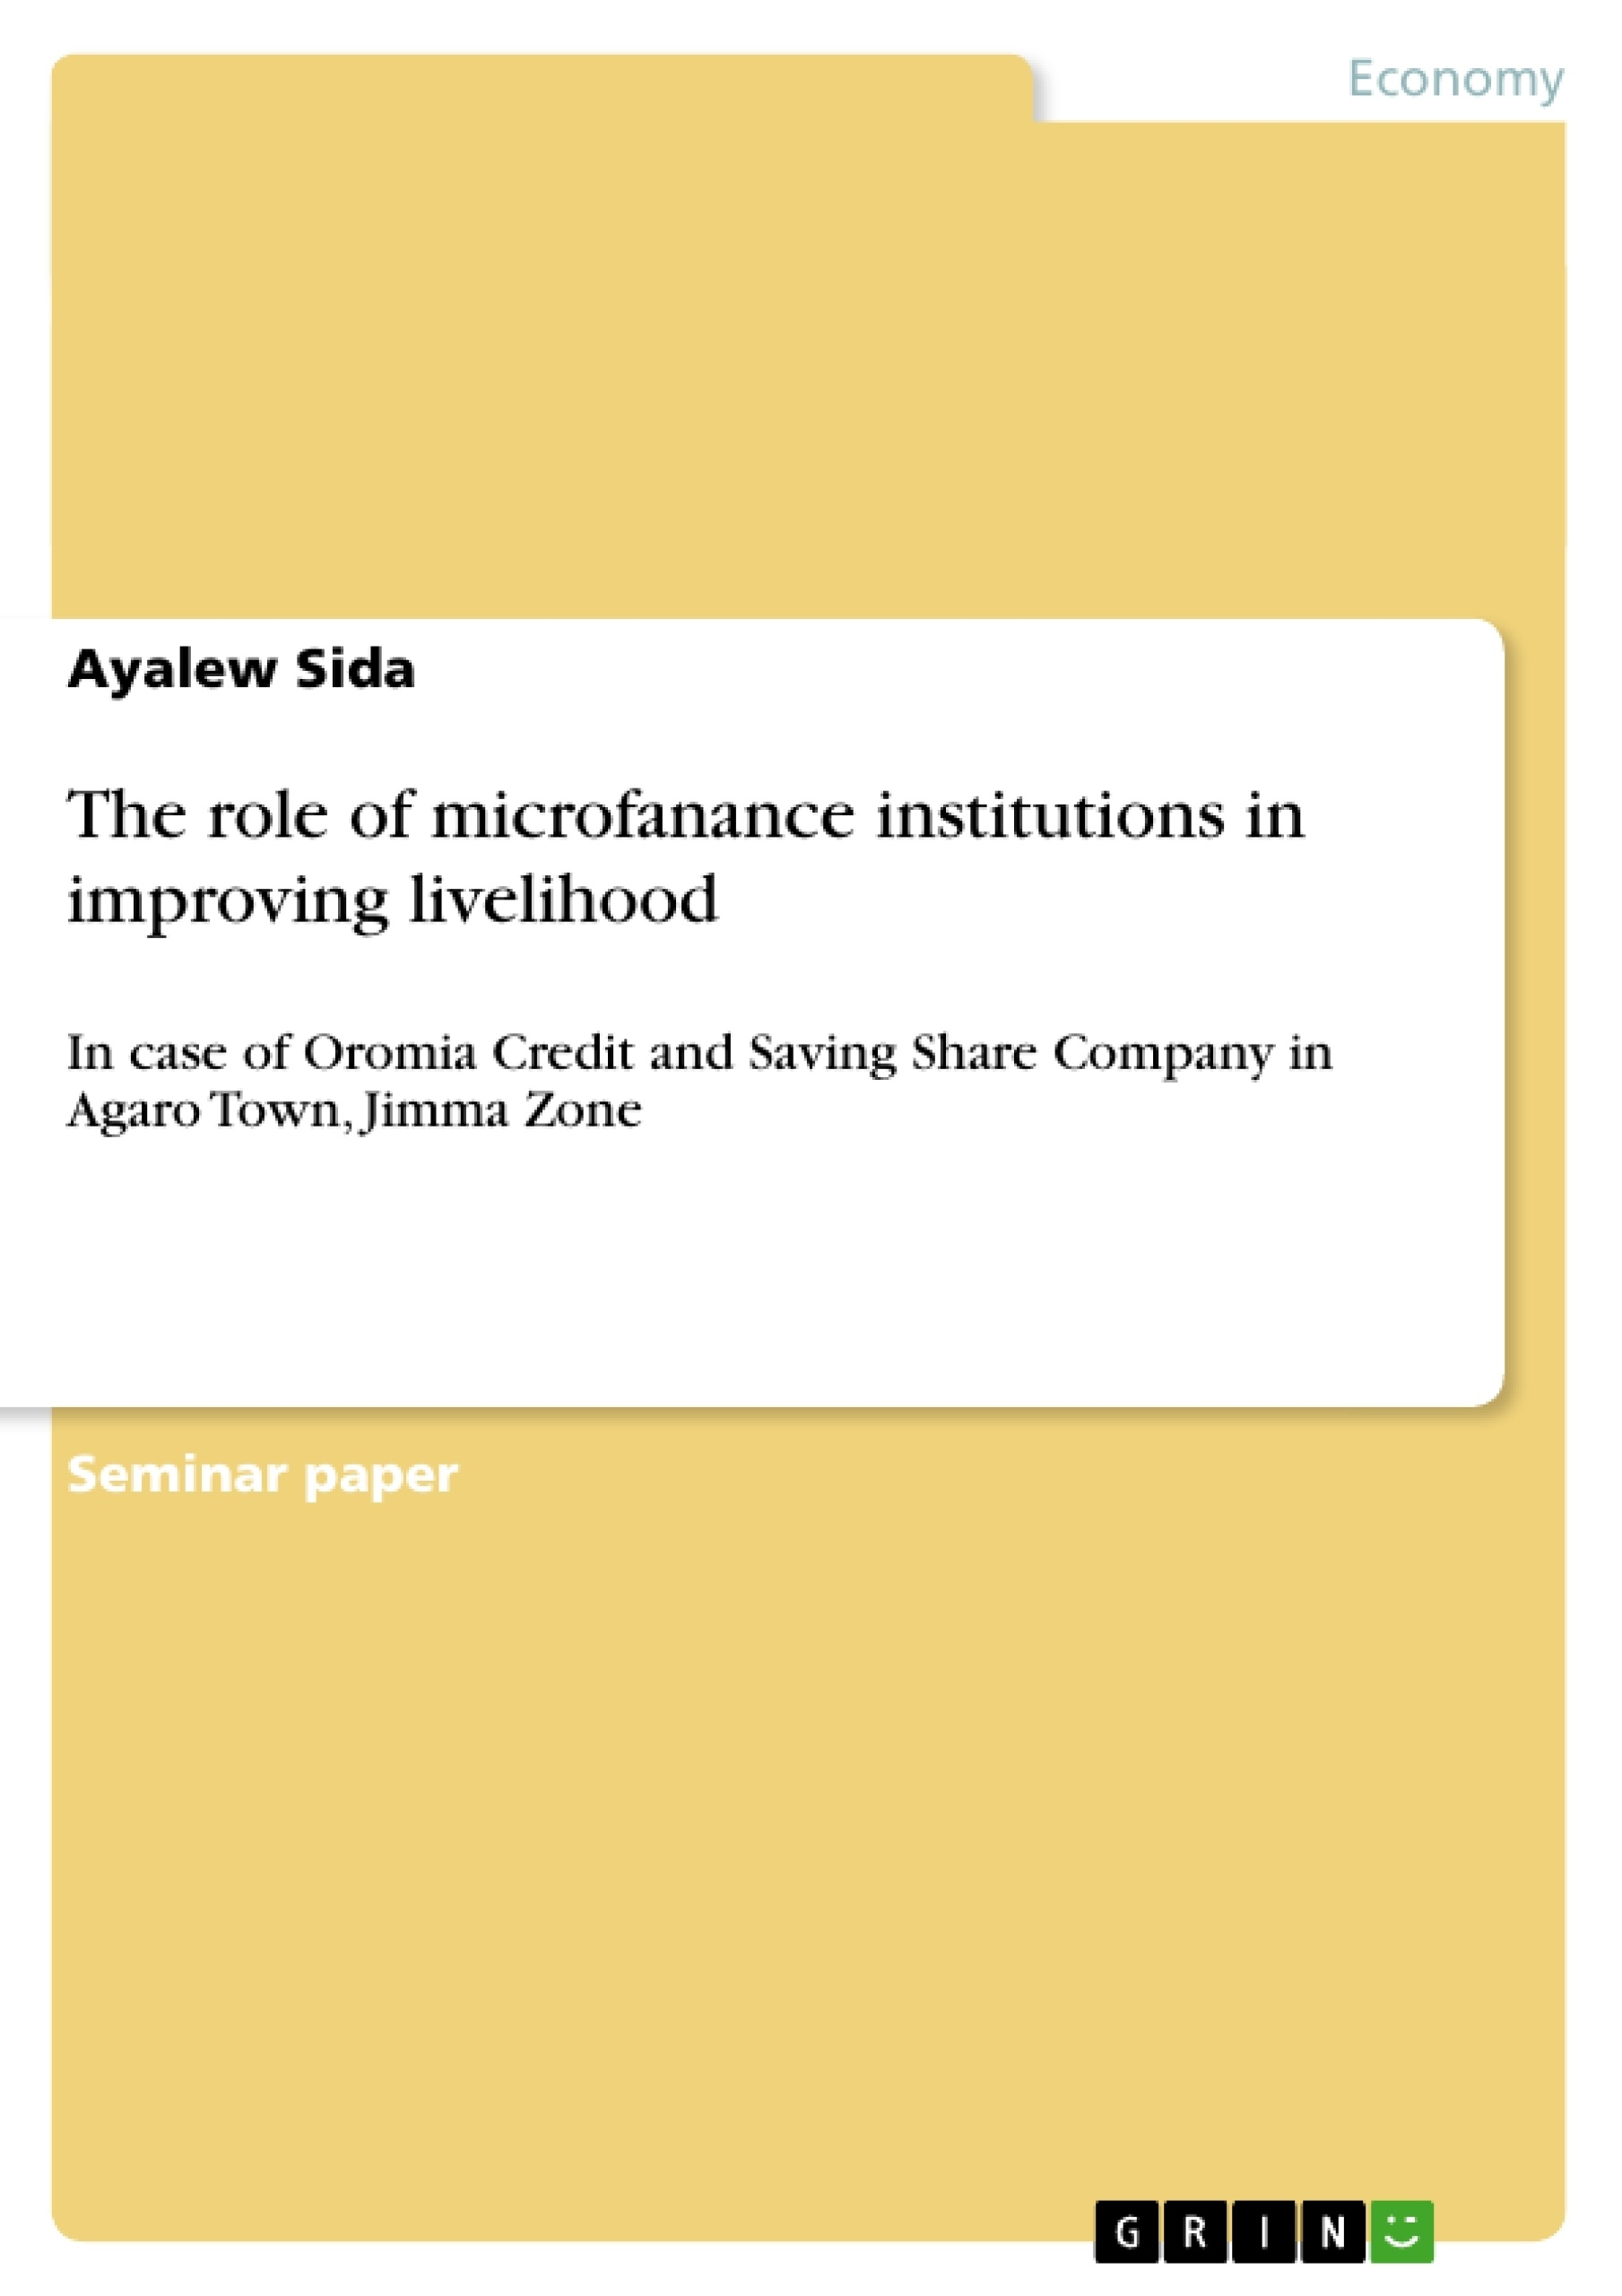 GRIN - The role of microfanance institutions in improving livelihood